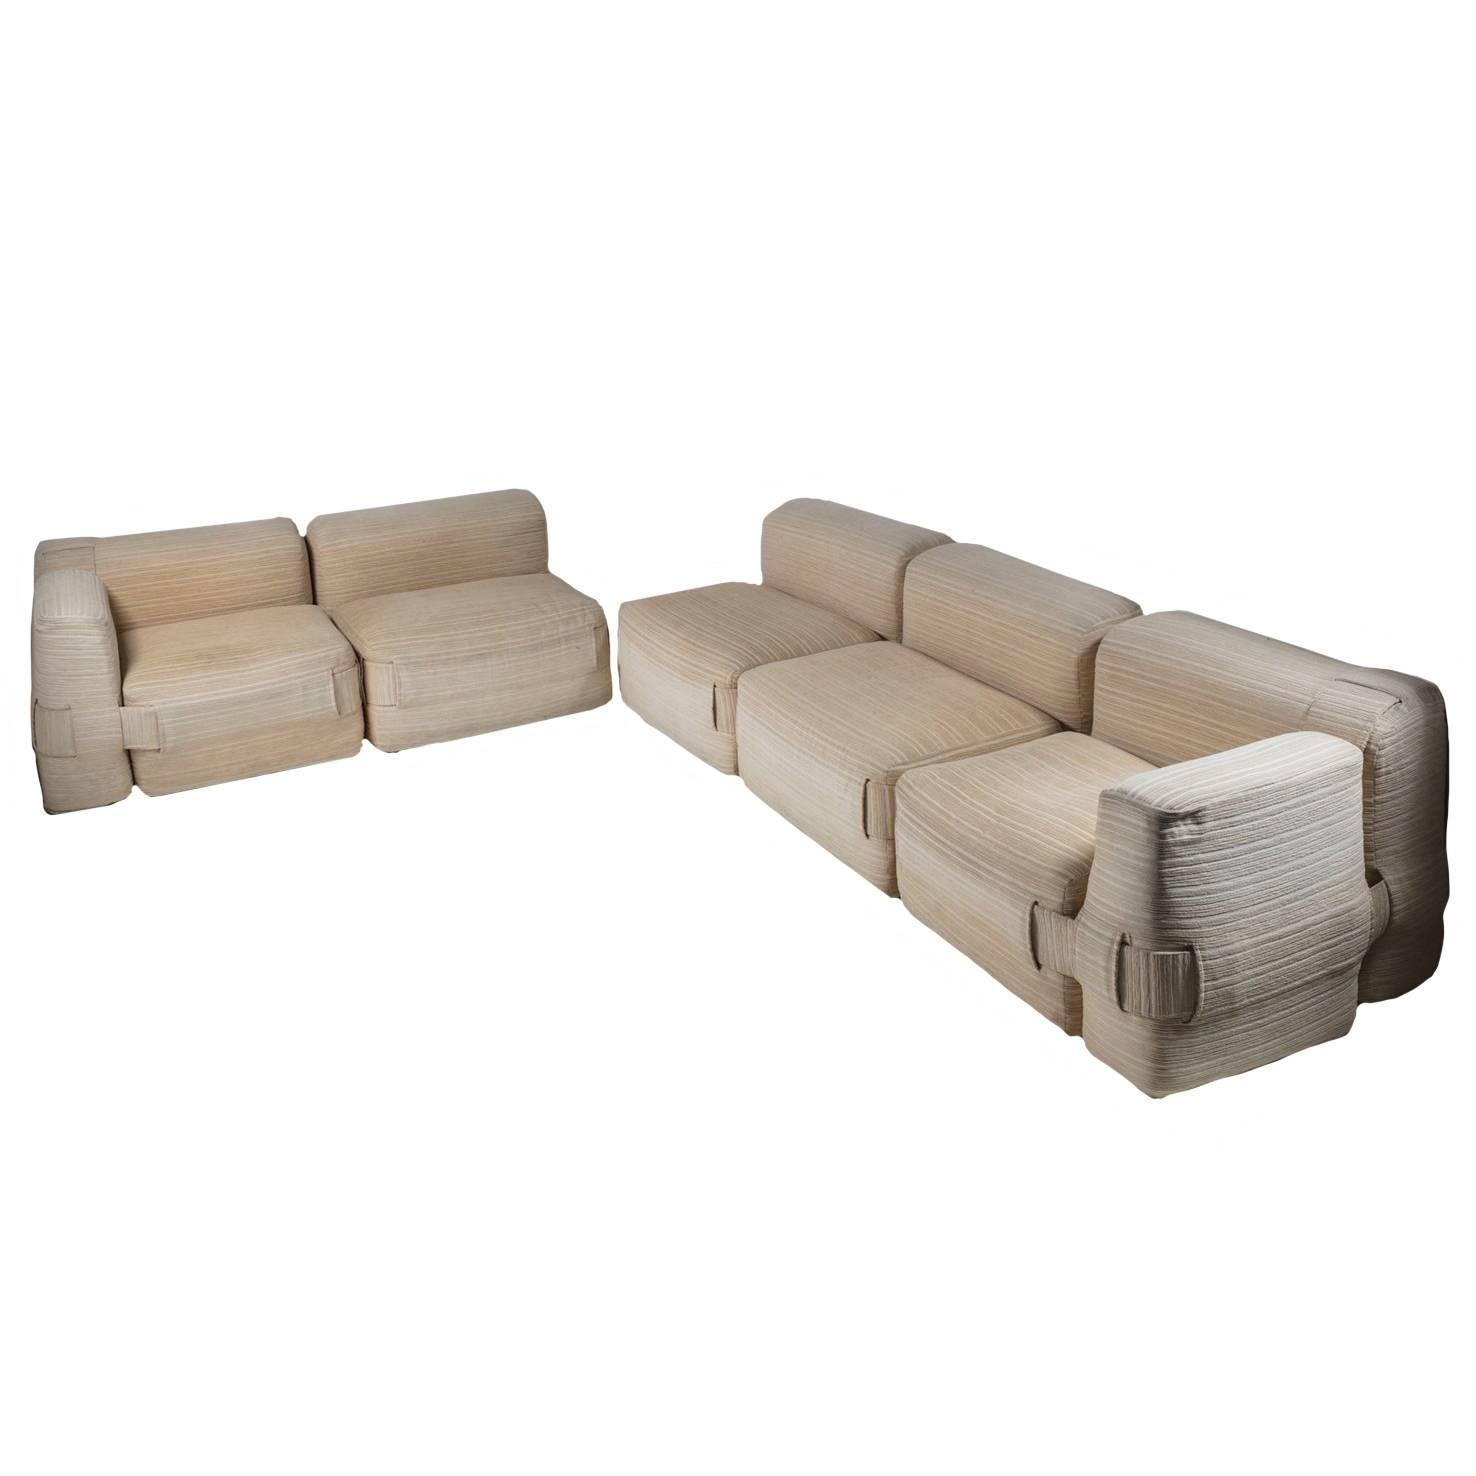 "932"" Sofa Setmario Bellini For Cassina For Sale At 1Stdibs Within Bellini Sofas (View 9 of 20)"